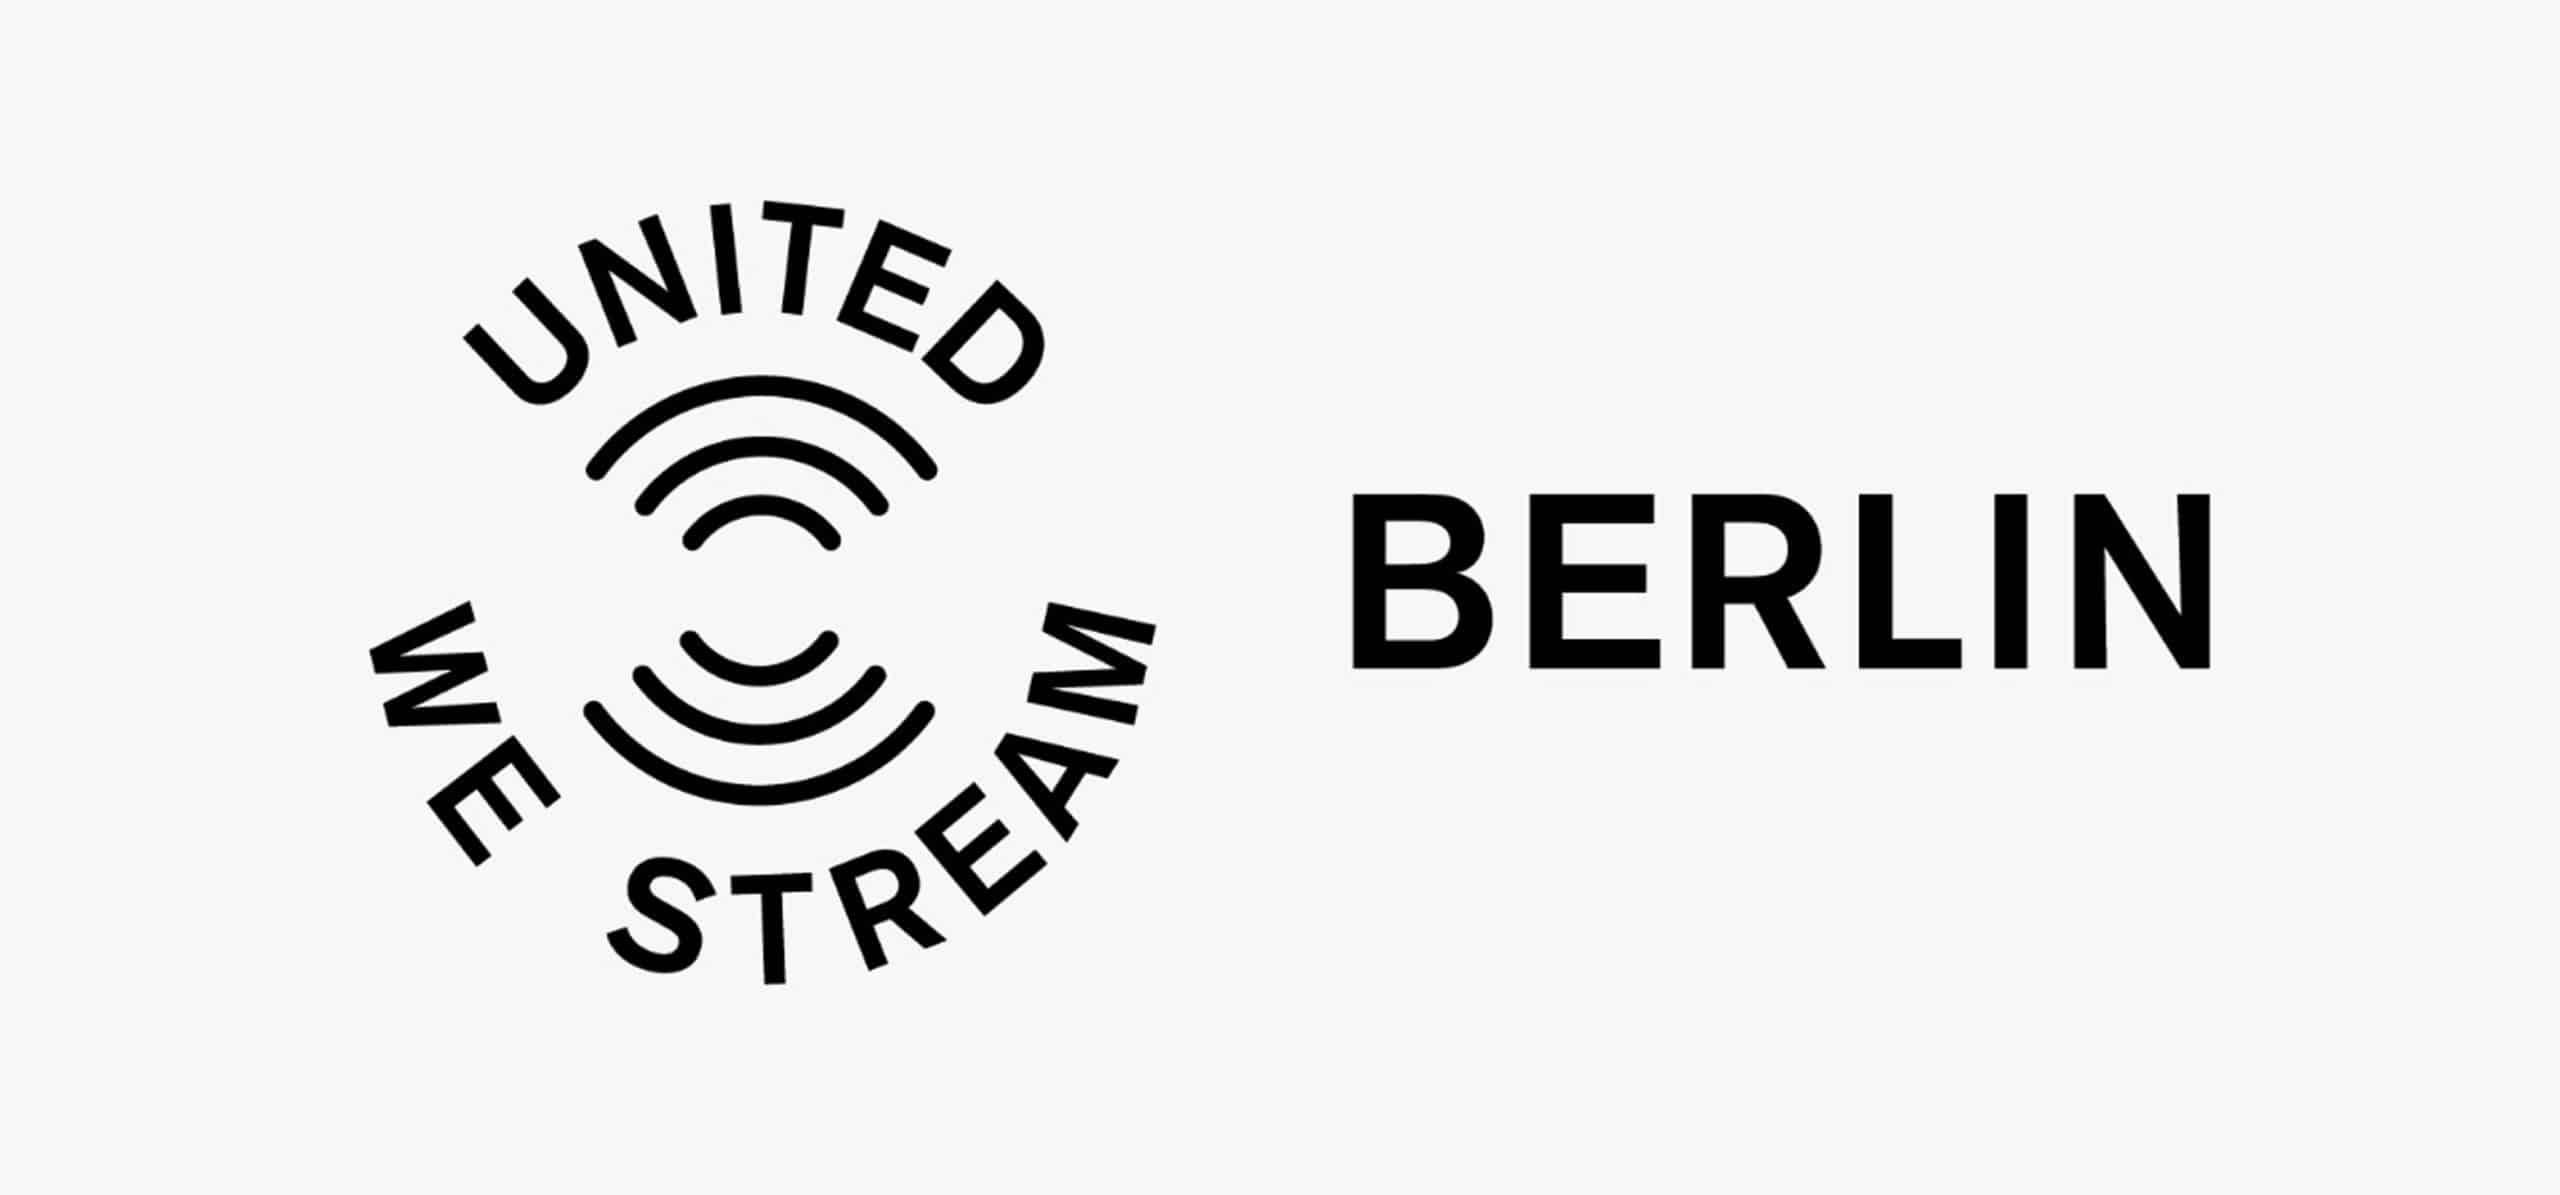 UNITED WE STREAM BERLIN